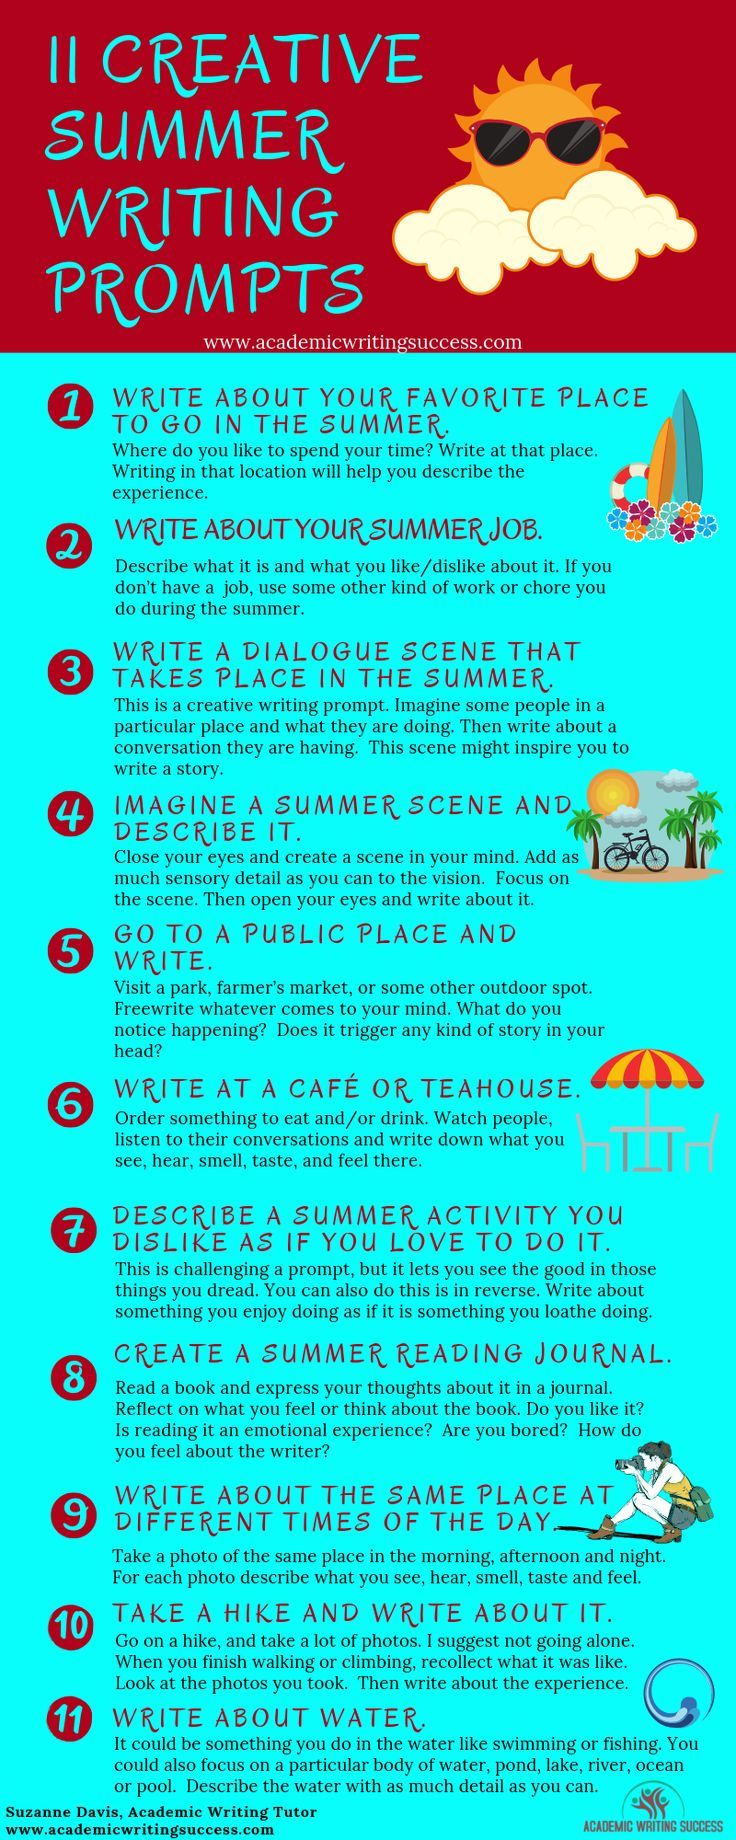 16 Summer Writing Prompts for the Creative Soul - Academic Writing